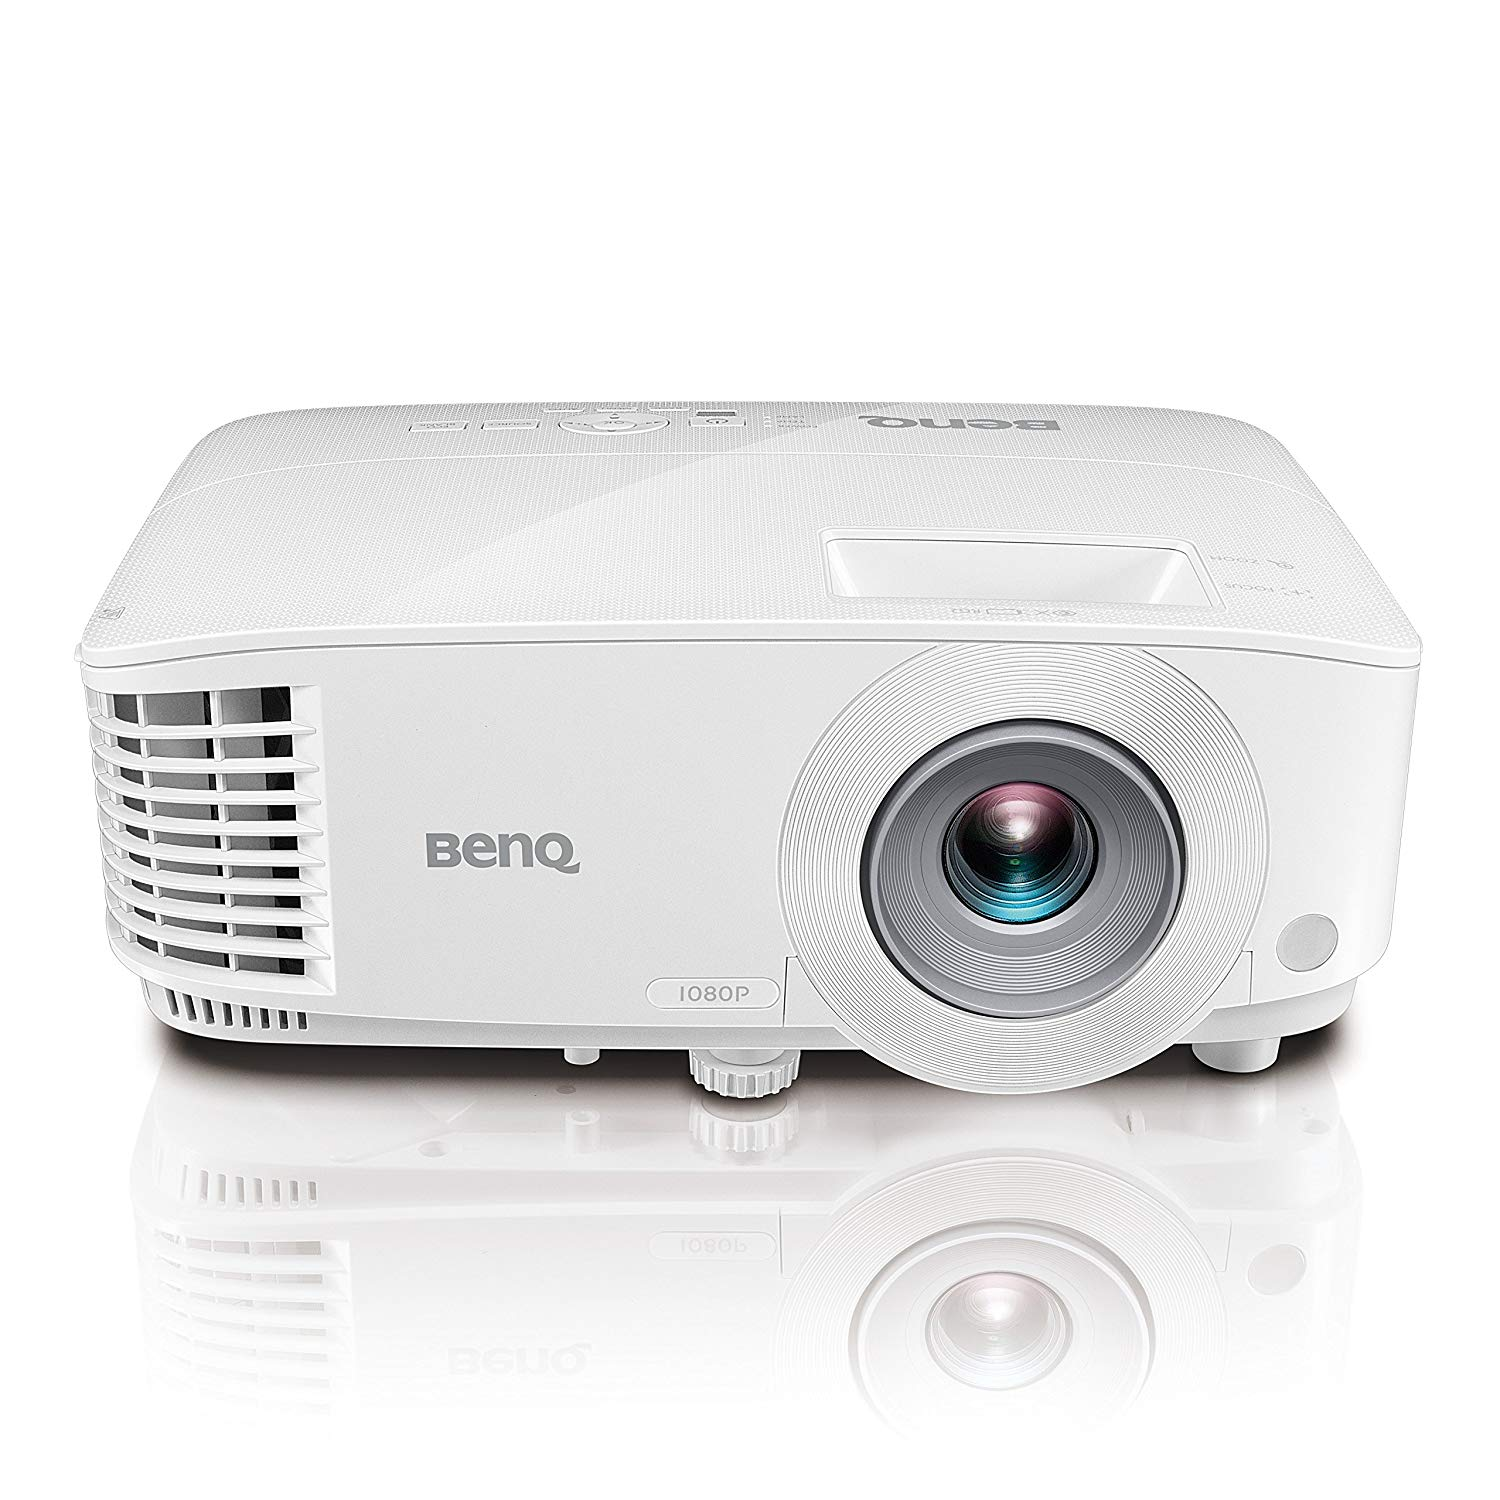 BenQ MH733 1080P Business Projector - Projectors for Conference Room